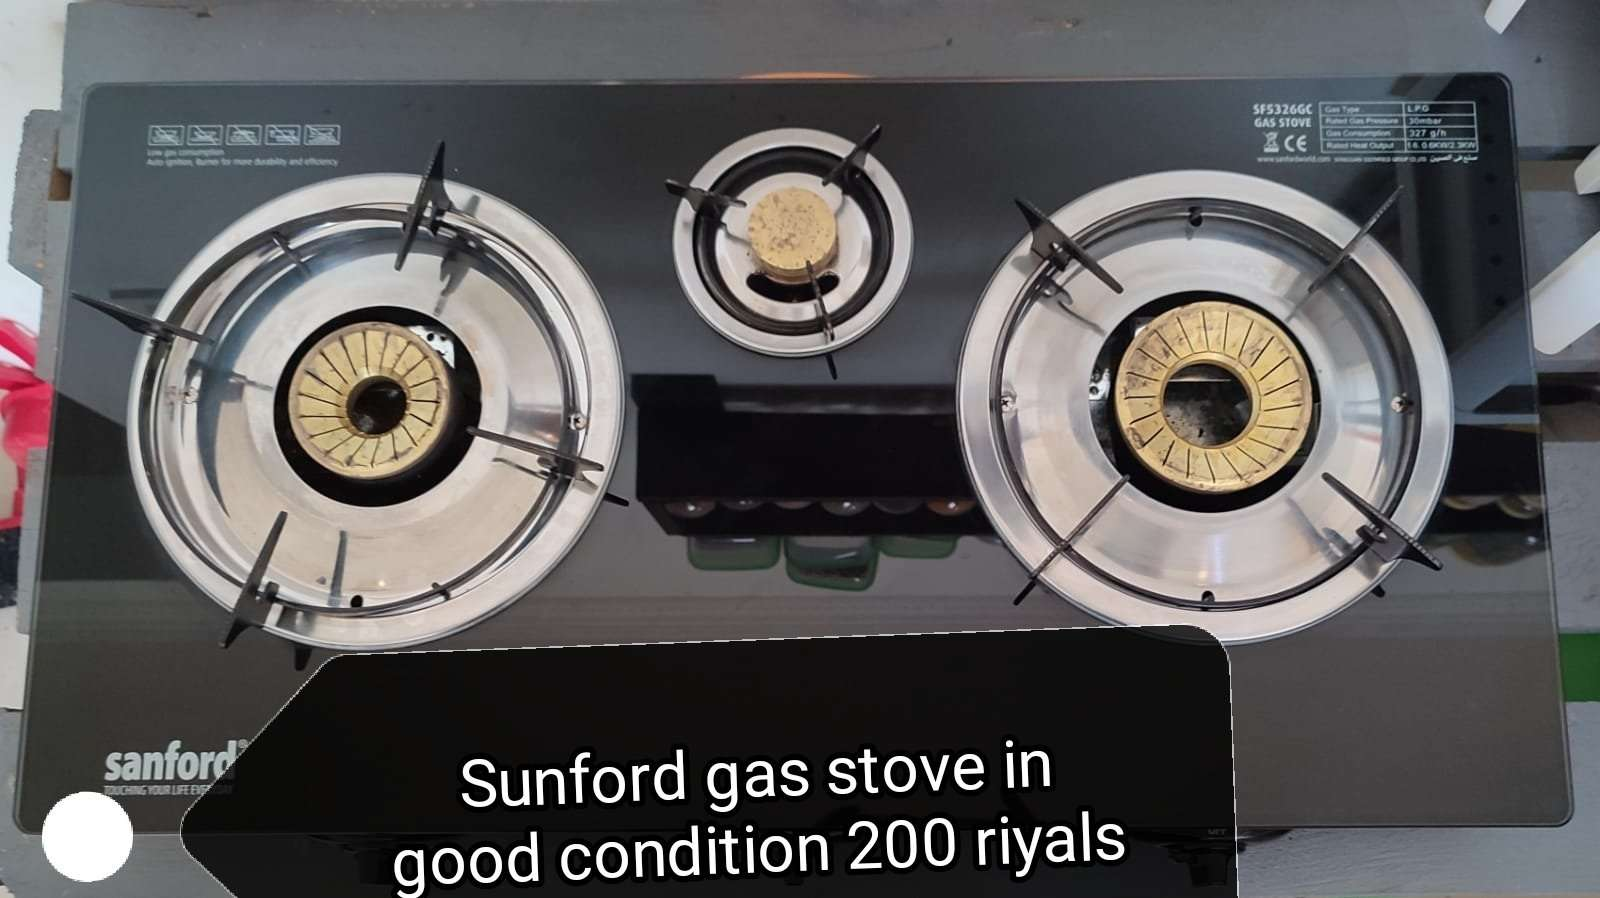 Sunford gas stove in good condition